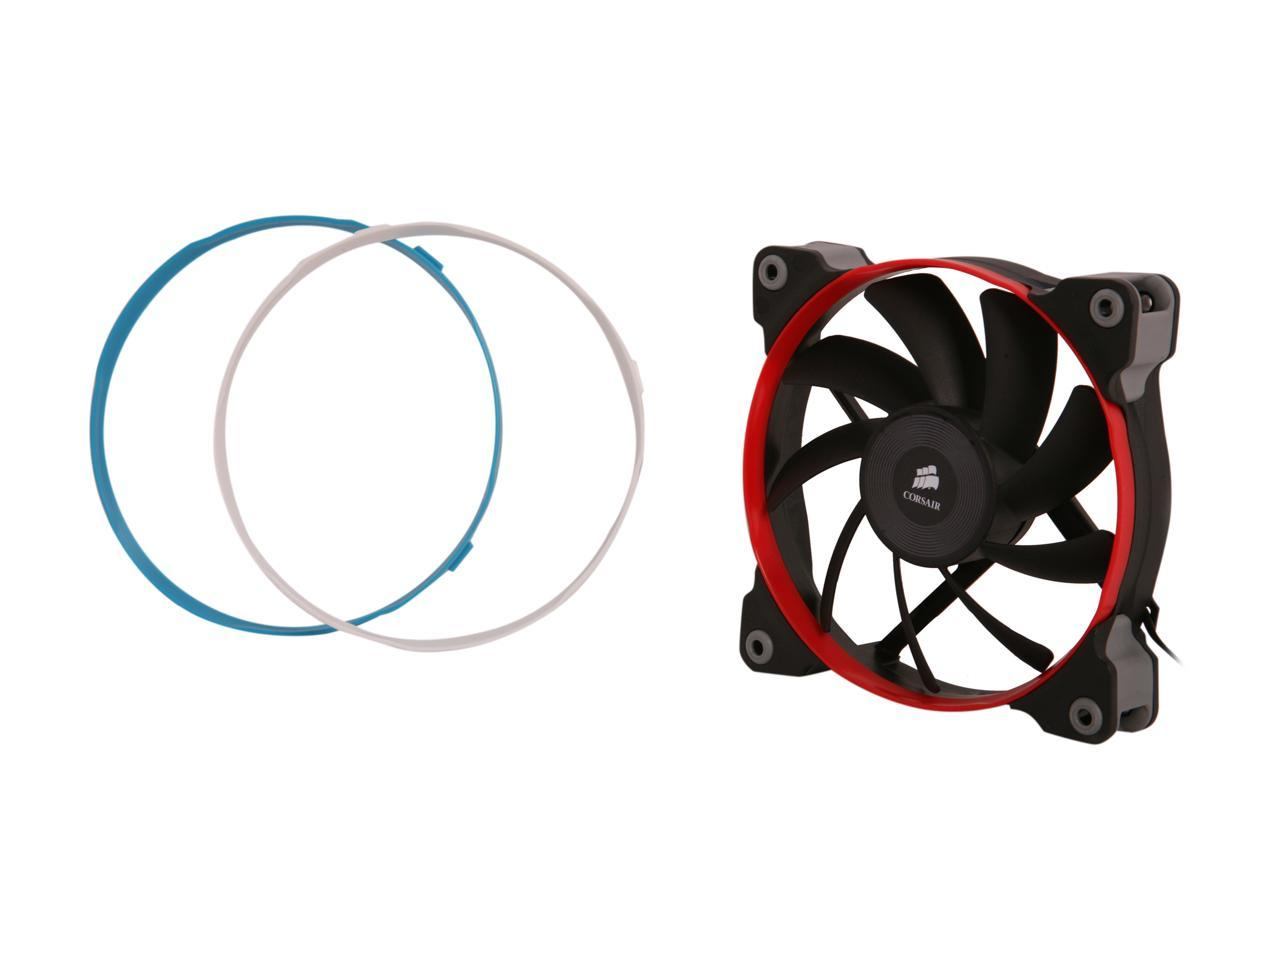 Details about Corsair Air Series AF120 120mm Quiet Edition High Airflow  Case Fan Single Pack(C